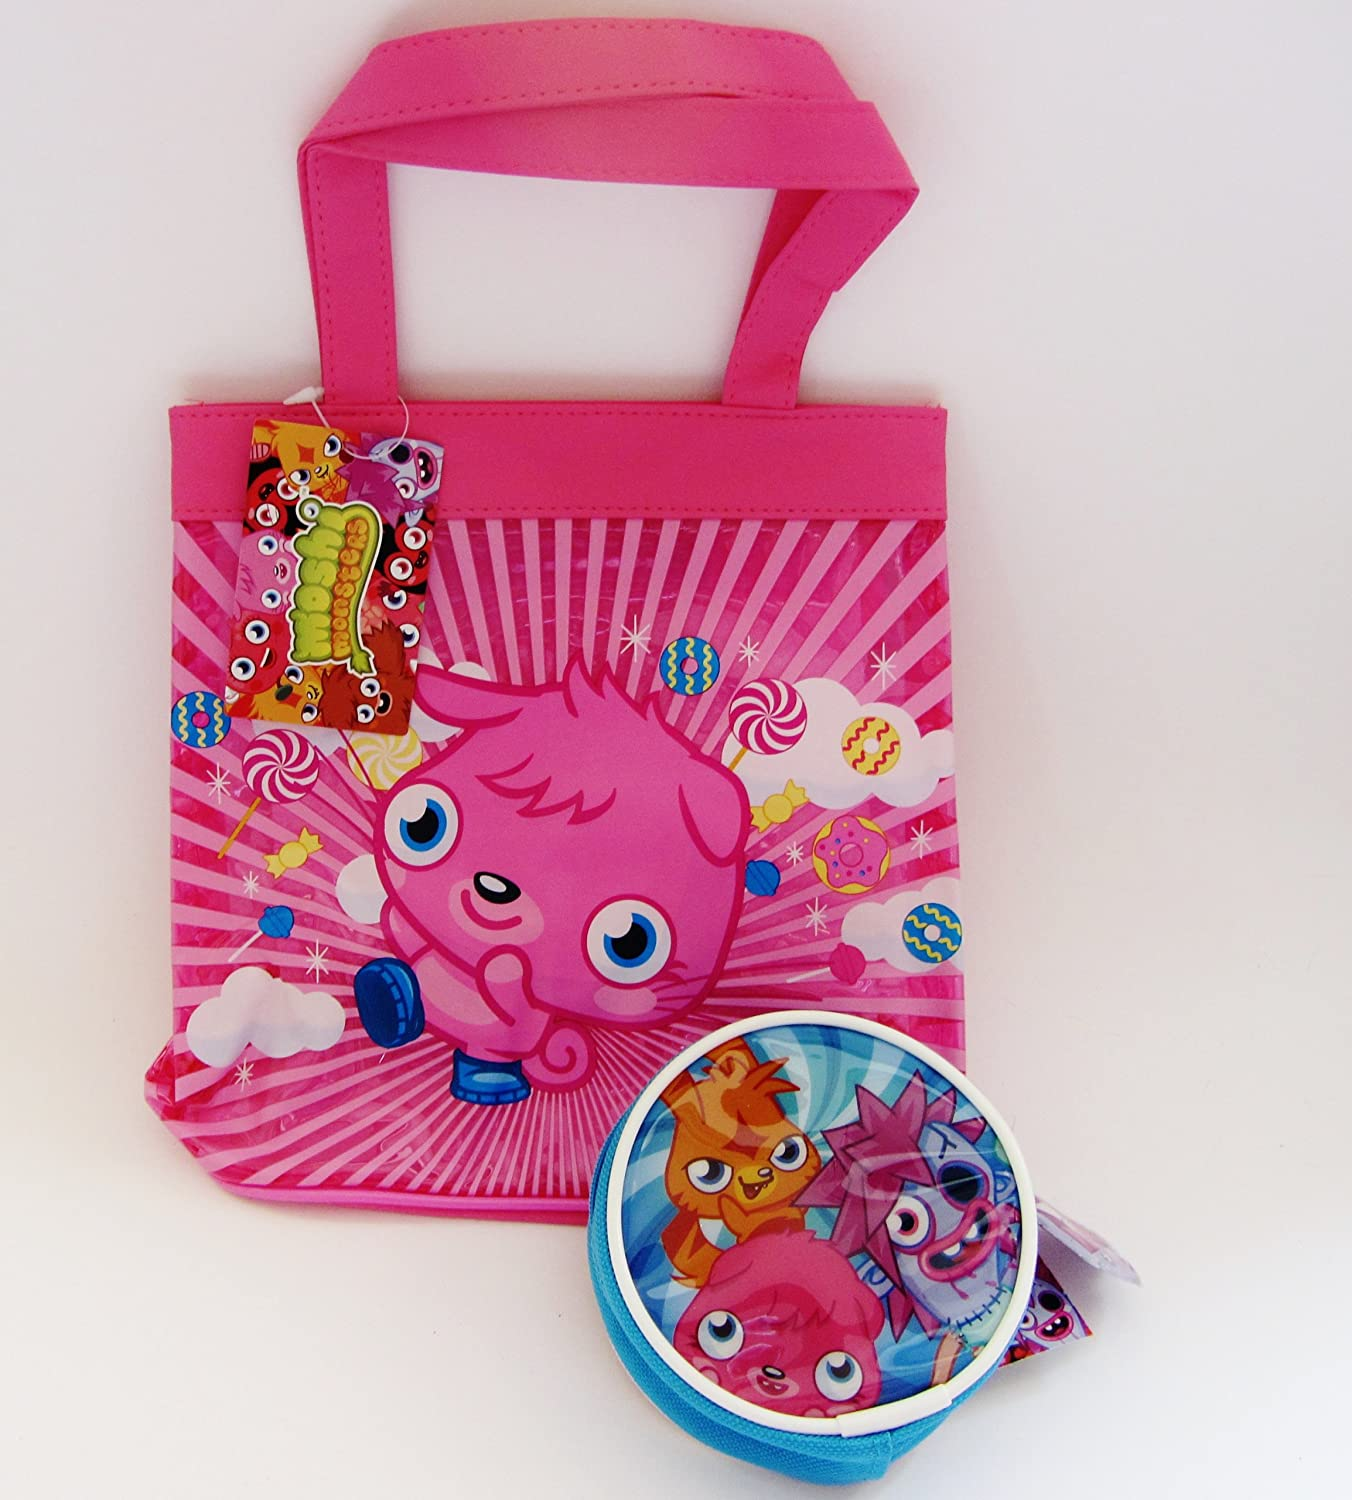 Moshi monsters poppet pink handbag and purse gift set amazon co uk toys games